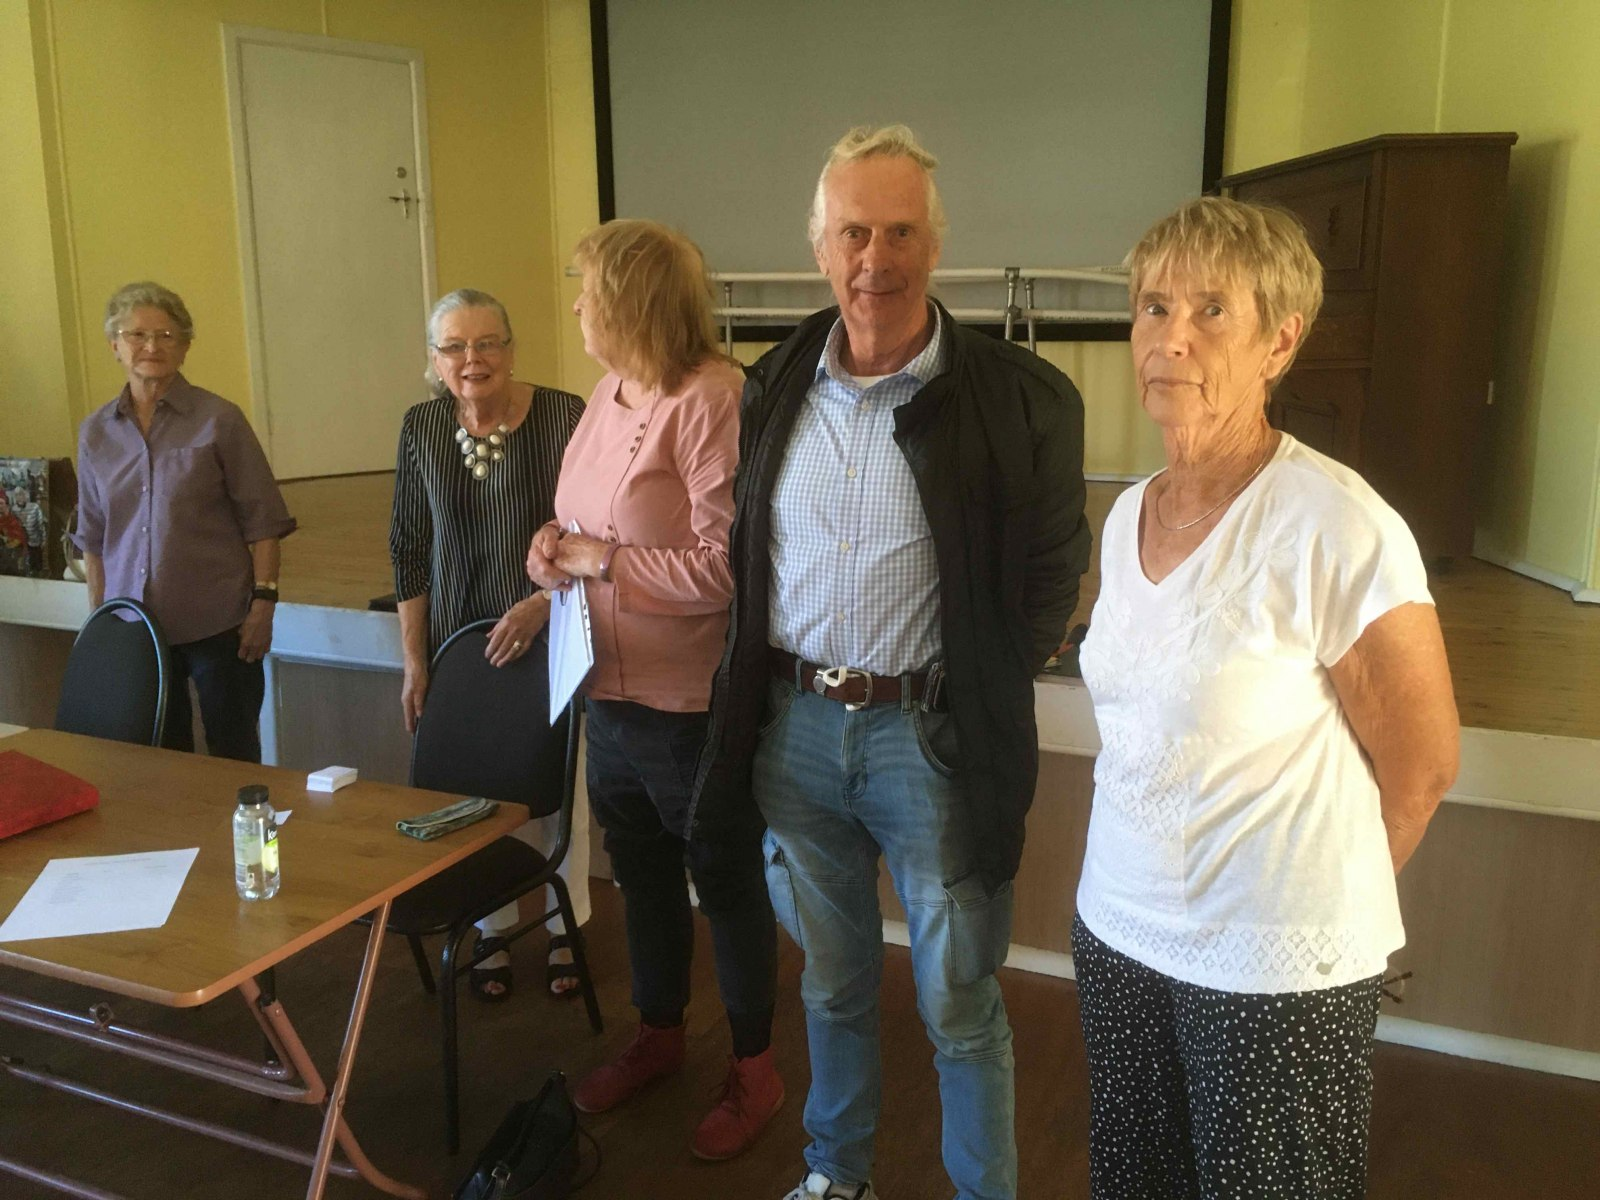 Lynette, Miriam, Allison, Peter and Sally -- the new Bathurst U3A committee.